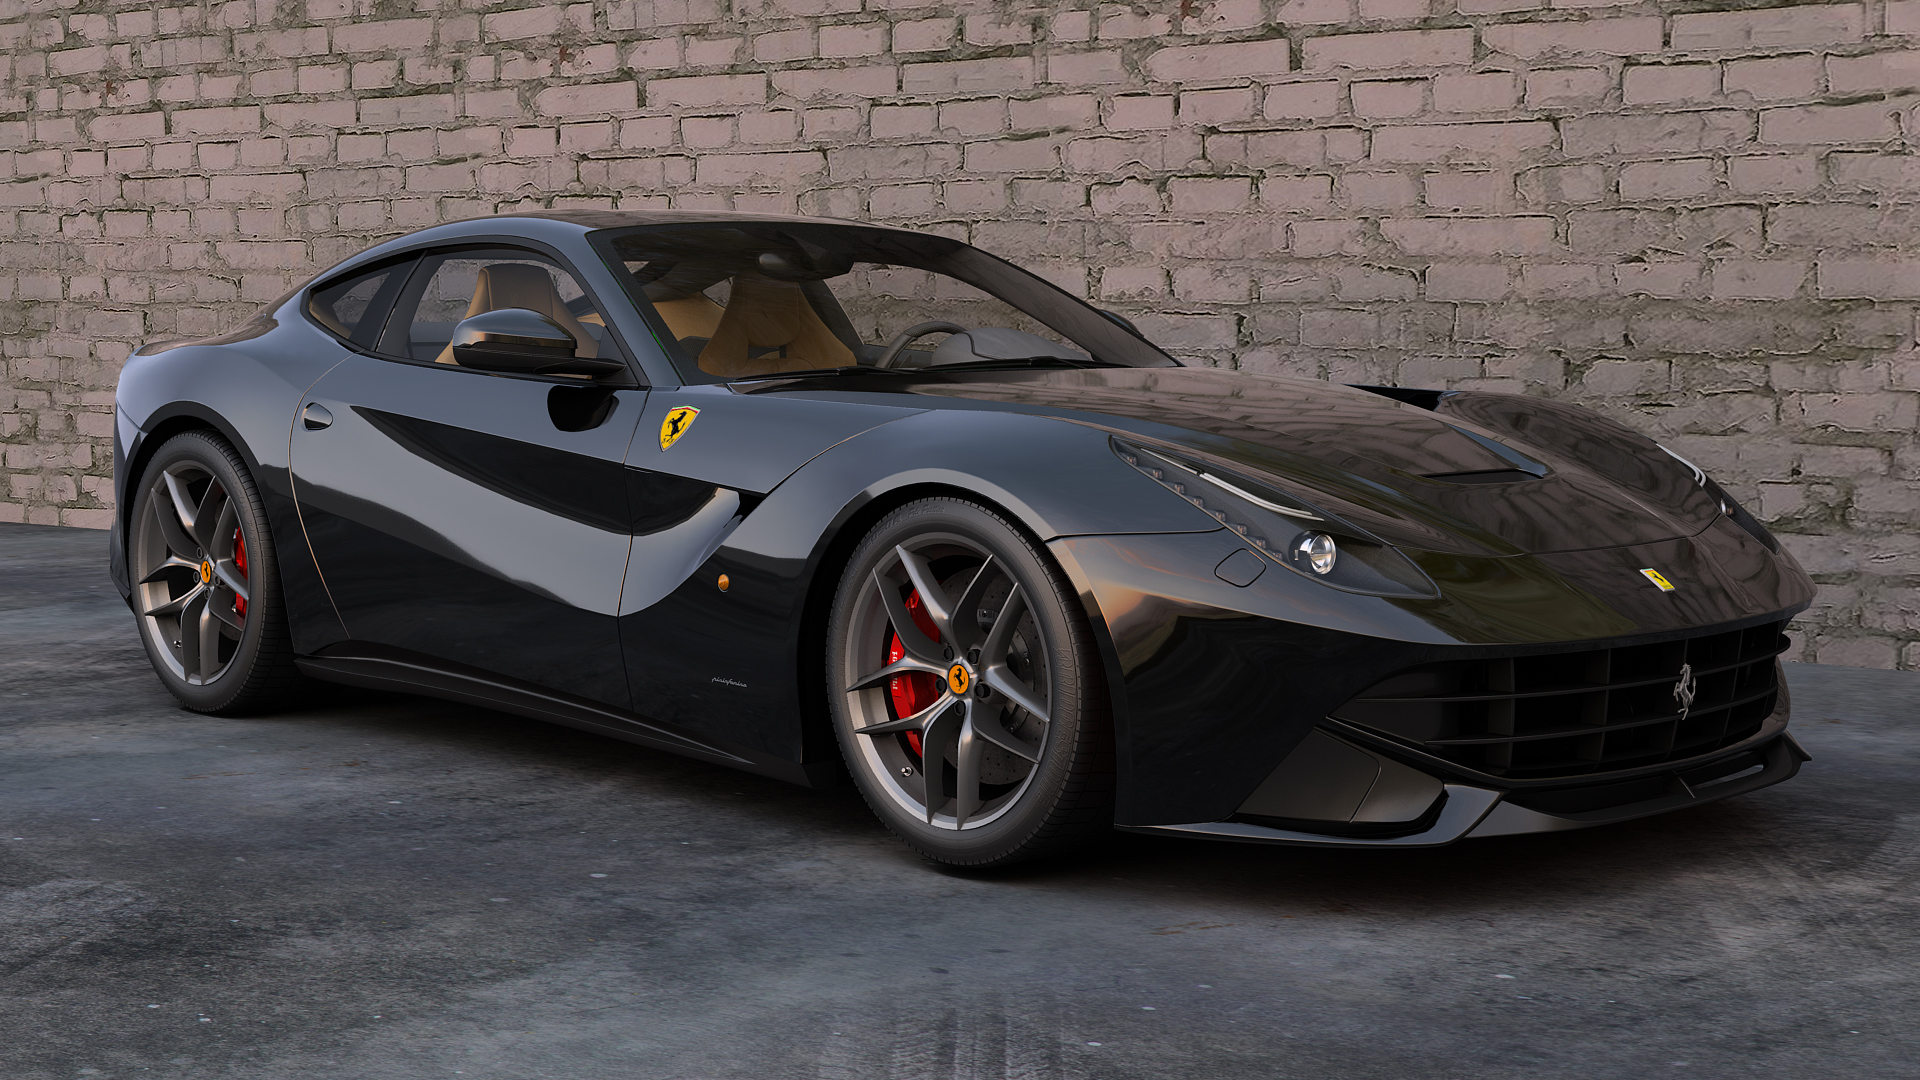 Ferrari F12 Berlinetta 14 High Quality Ferrari F12